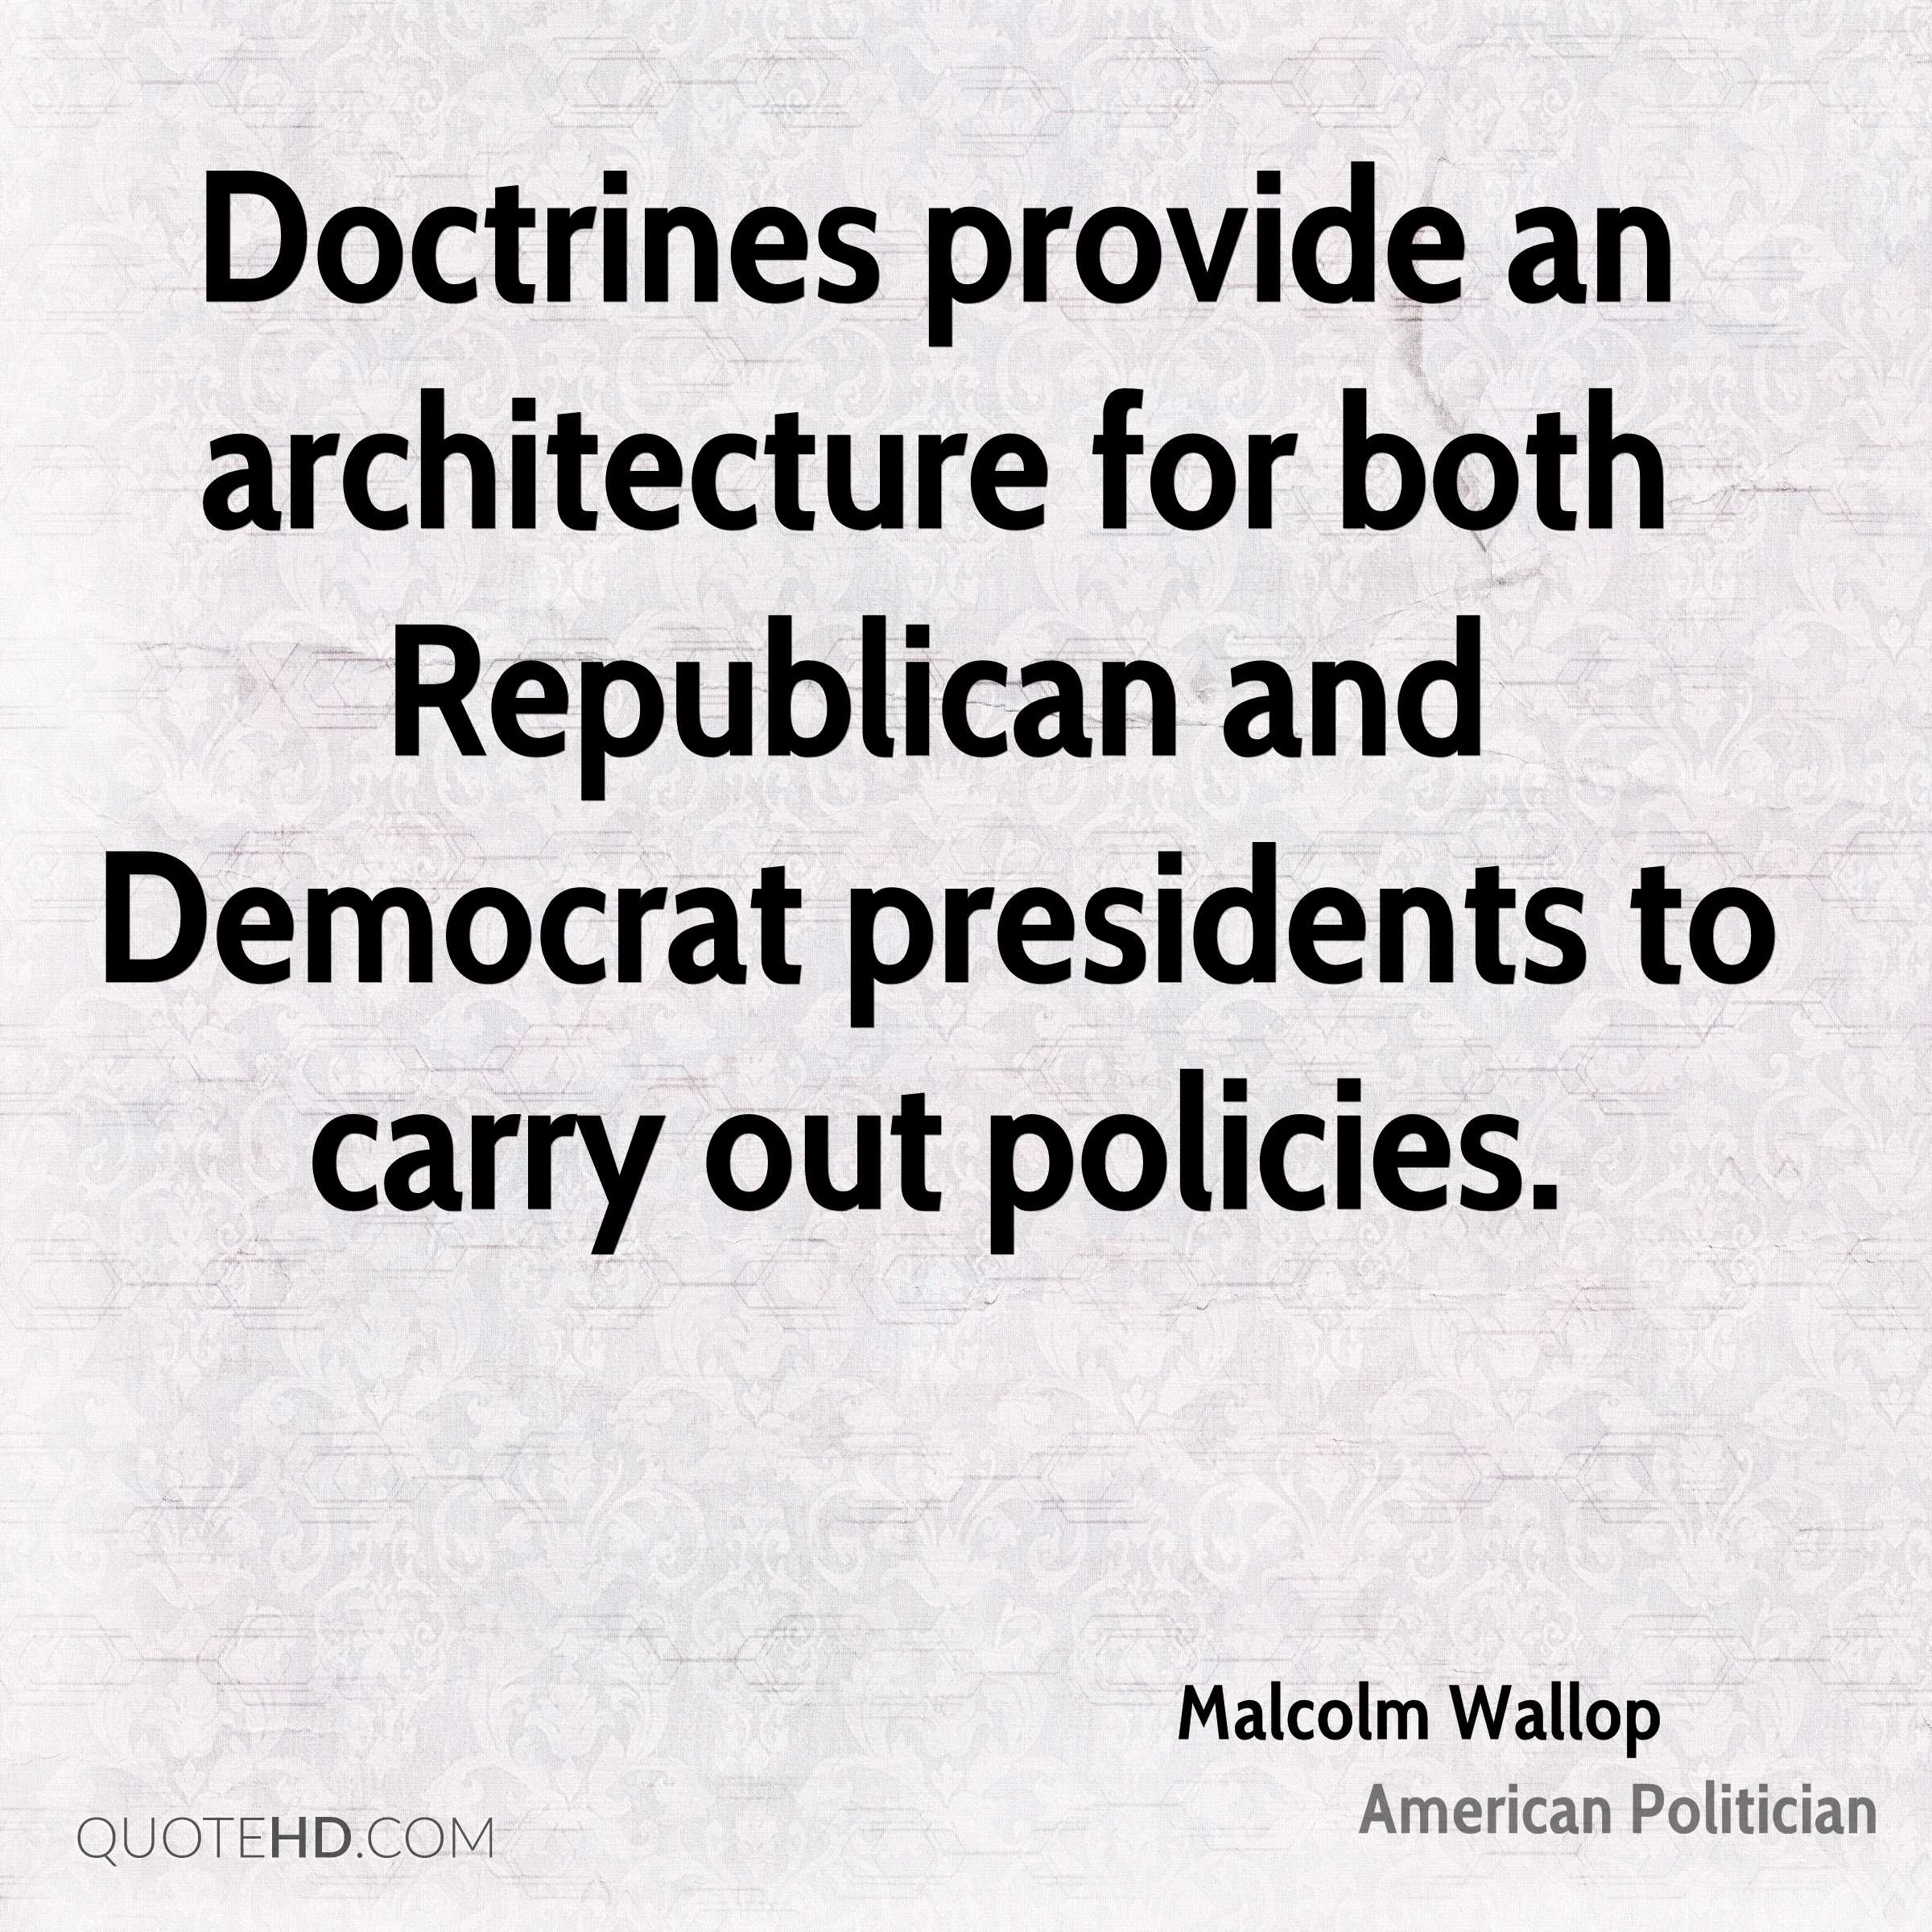 Doctrines provide an architecture for both Republican and Democrat presidents to carry out policies.